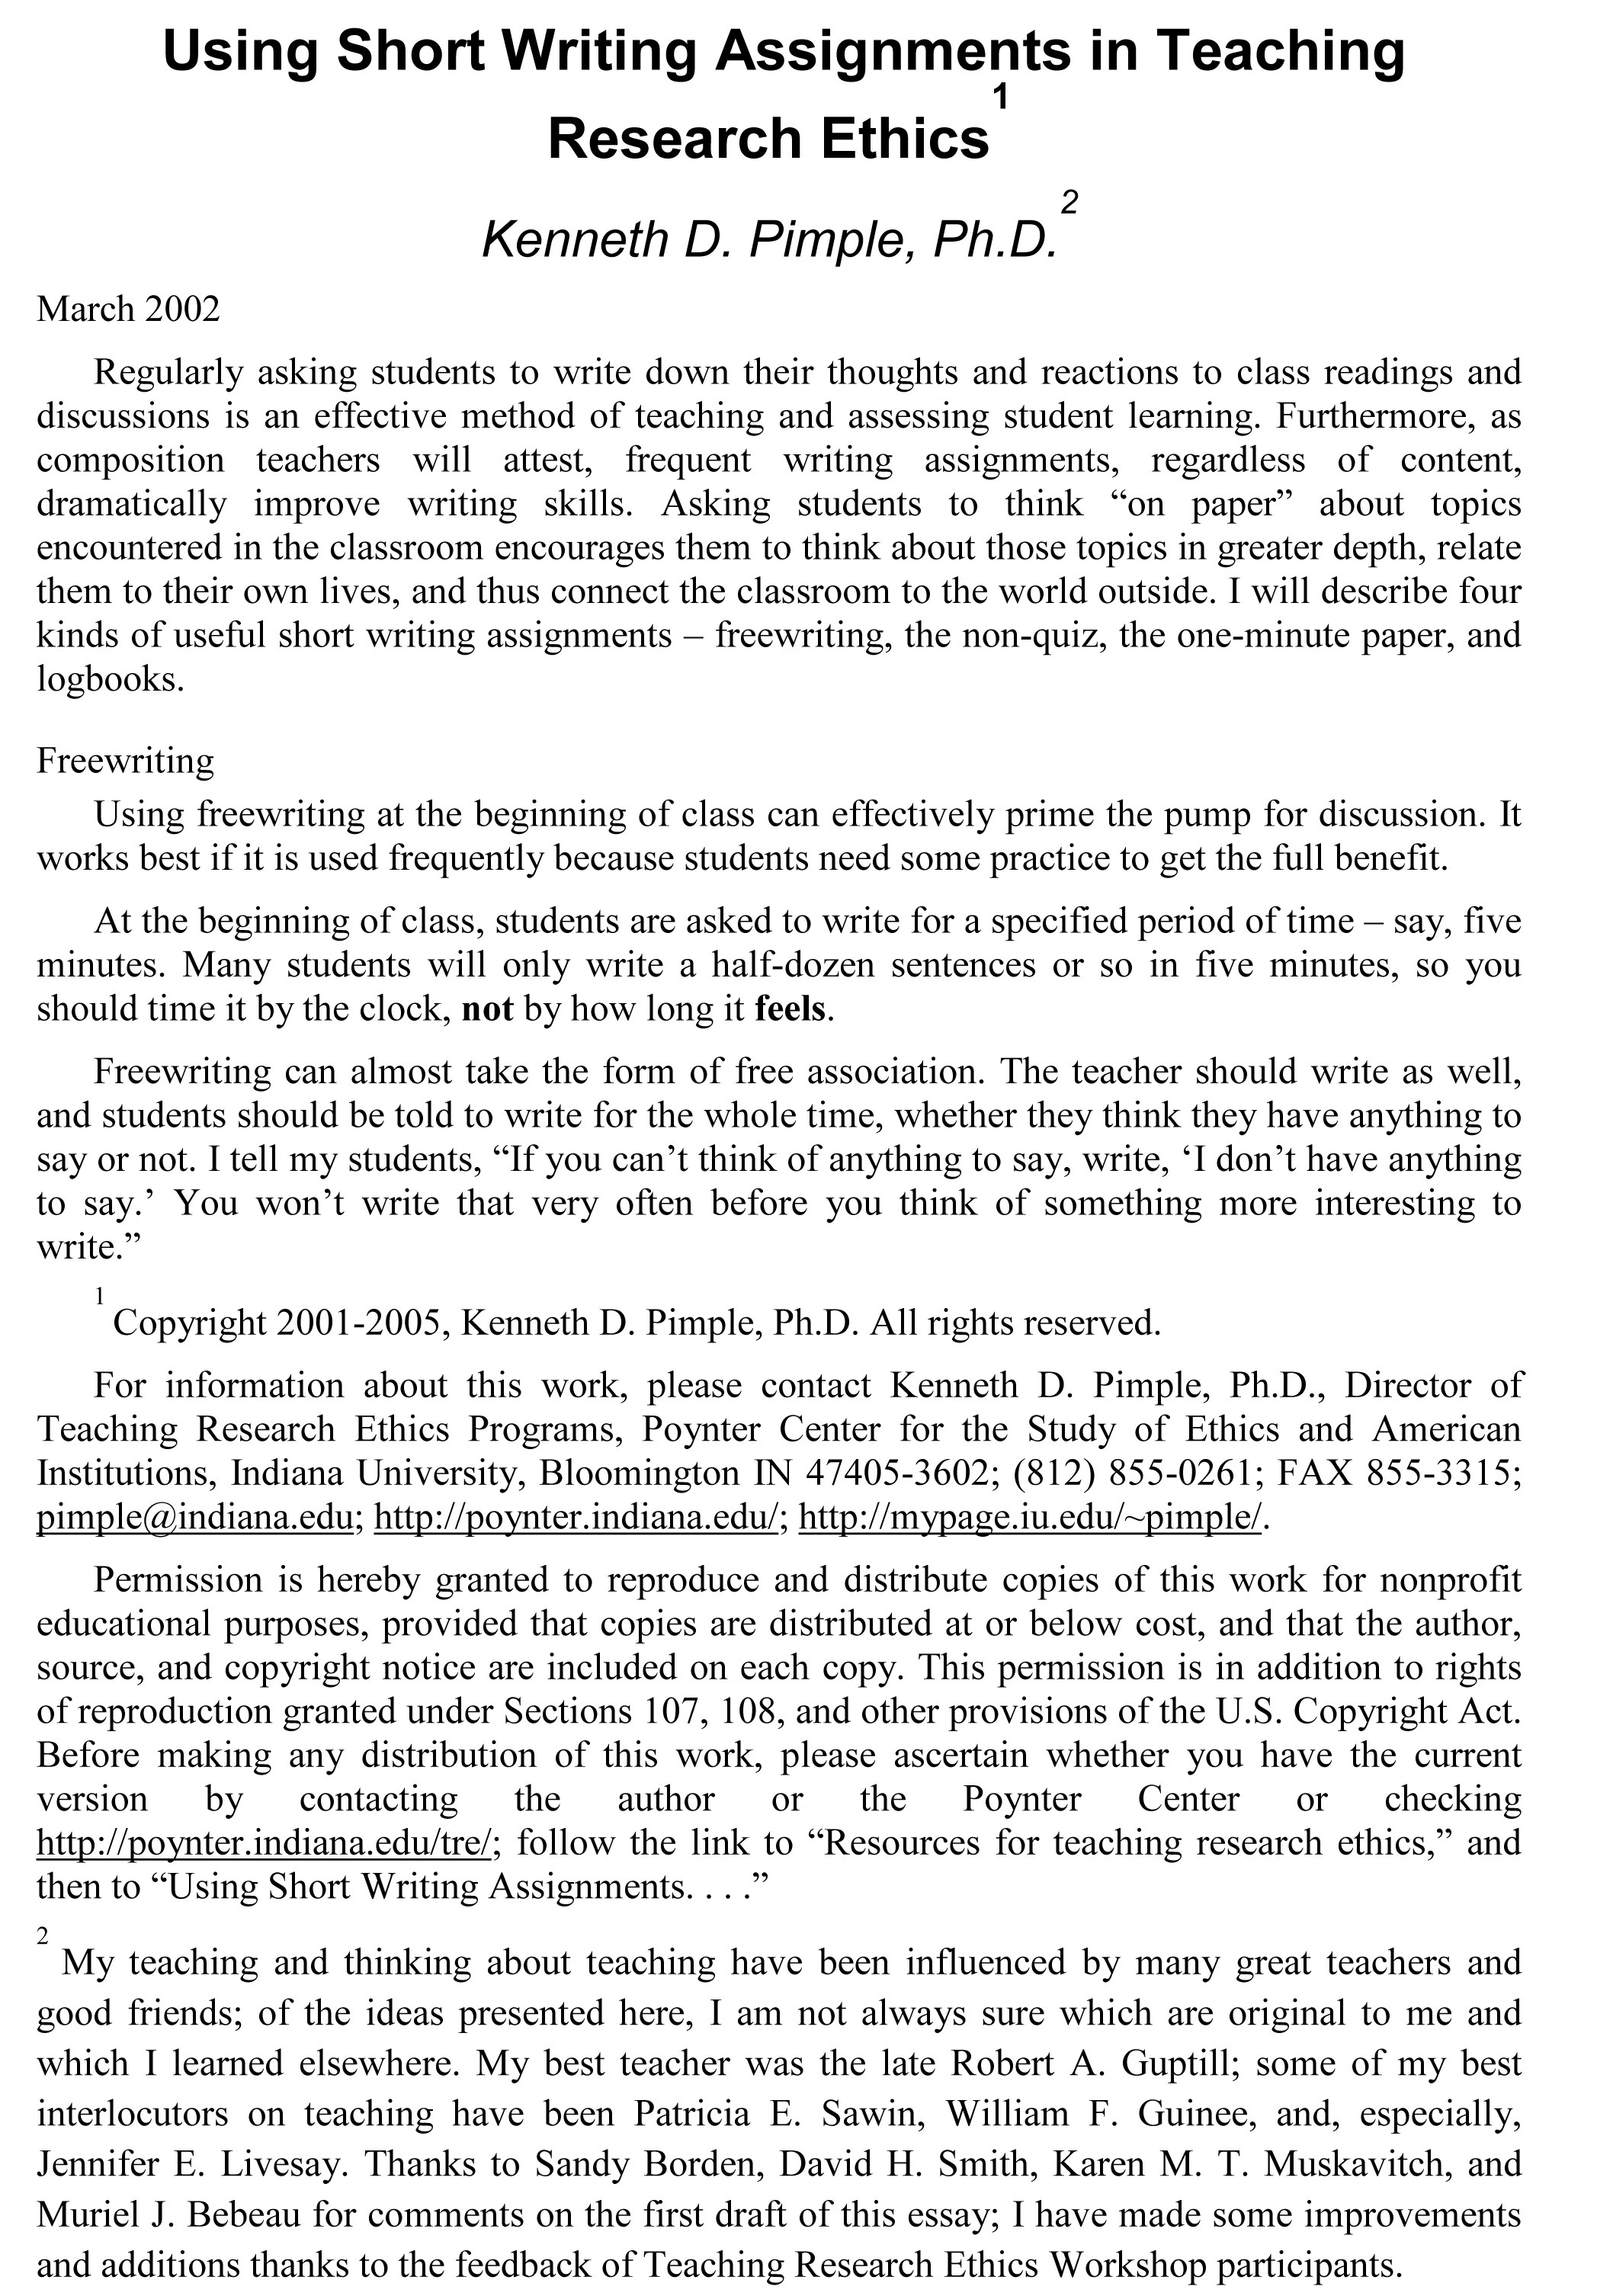 015 Essay Example Persuasive Samples Sample Awesome Short Examples About Bullying College Athletes Should Get Paid For Elementary Students Full